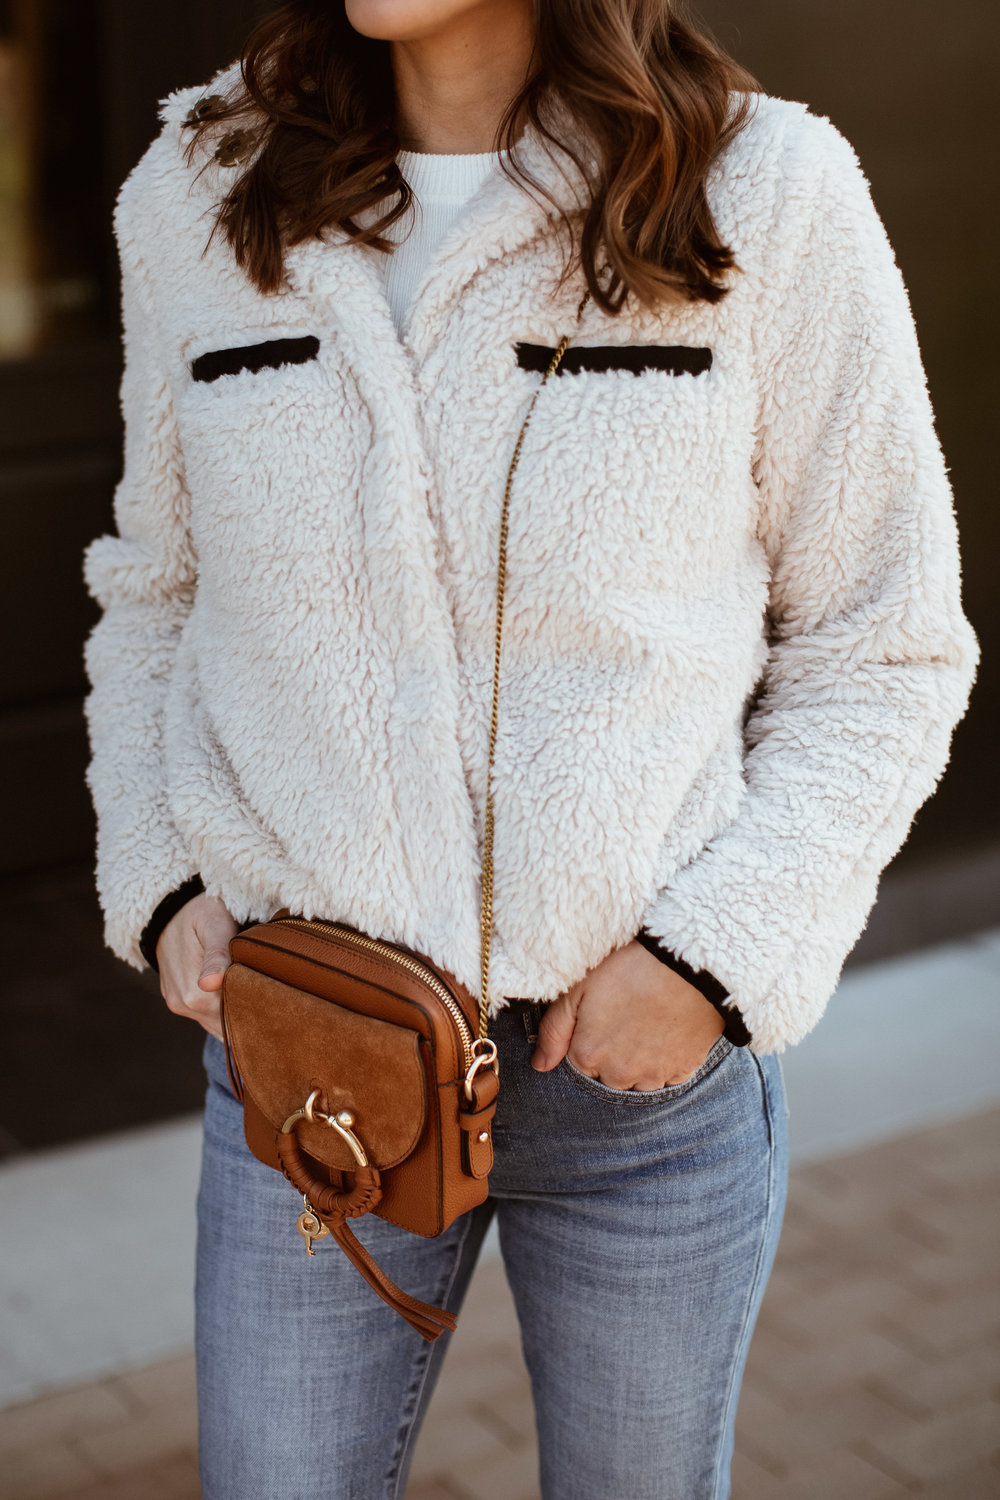 casual style with creamy white shearling jacket | www.girlmeetsgold.com